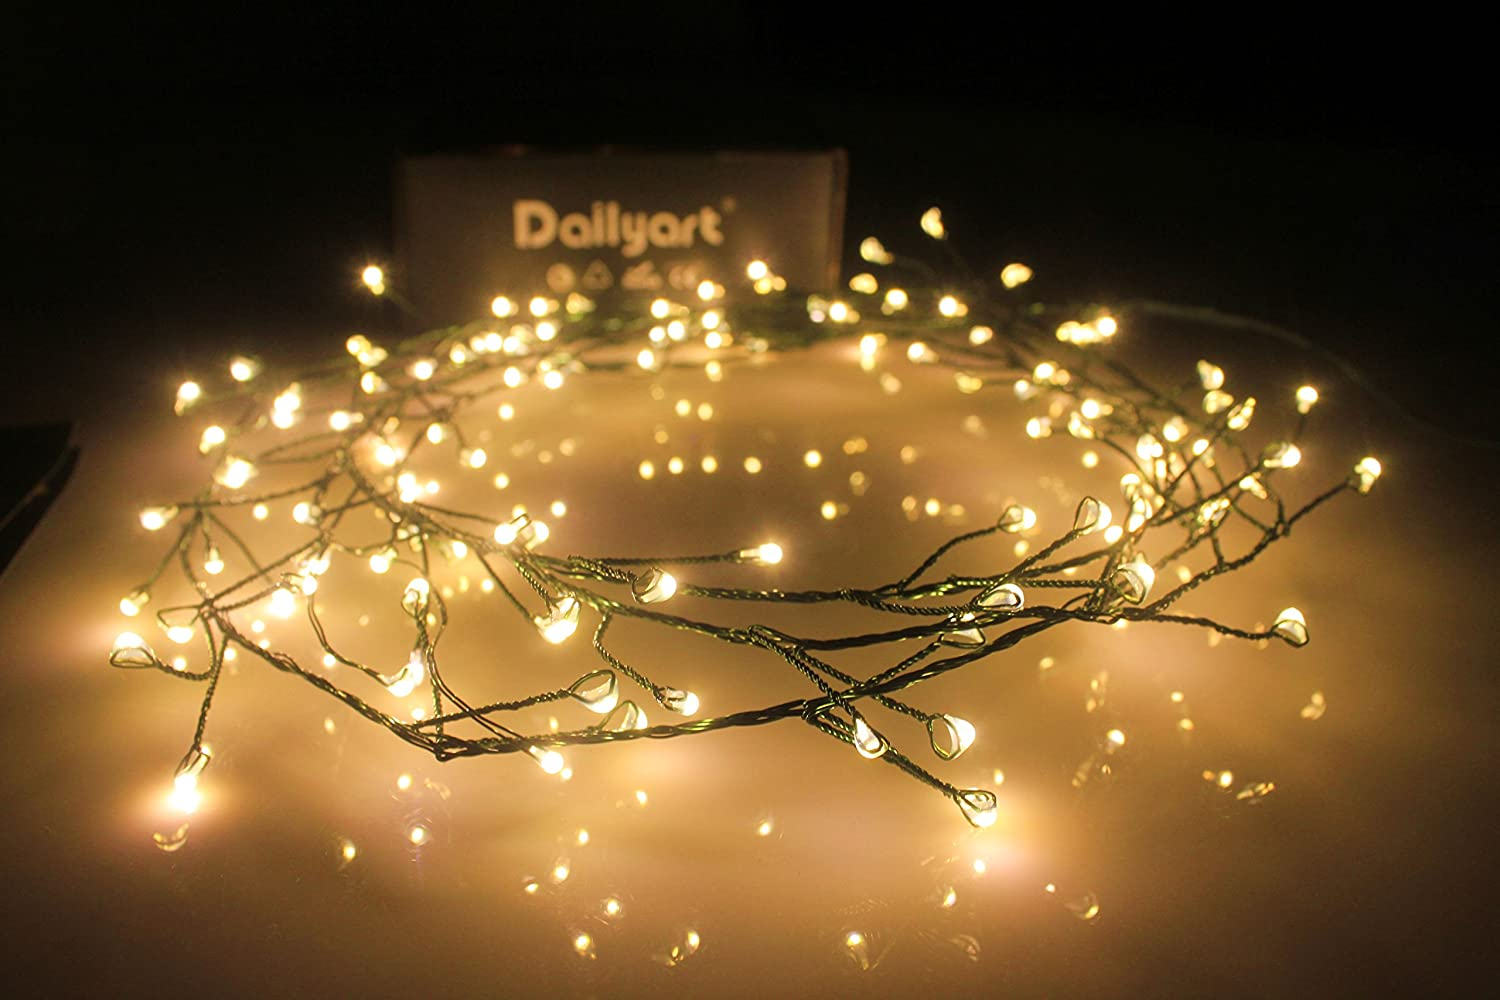 LED Starry Lights, Dailyart Battery Operated Waterproof Dark Green Copper Wire Fairy Light String Light for Garland, Wreath, Patio, Garden, Wedding, Party, Xmas(Warm White) -- 6feet 120 LEDs